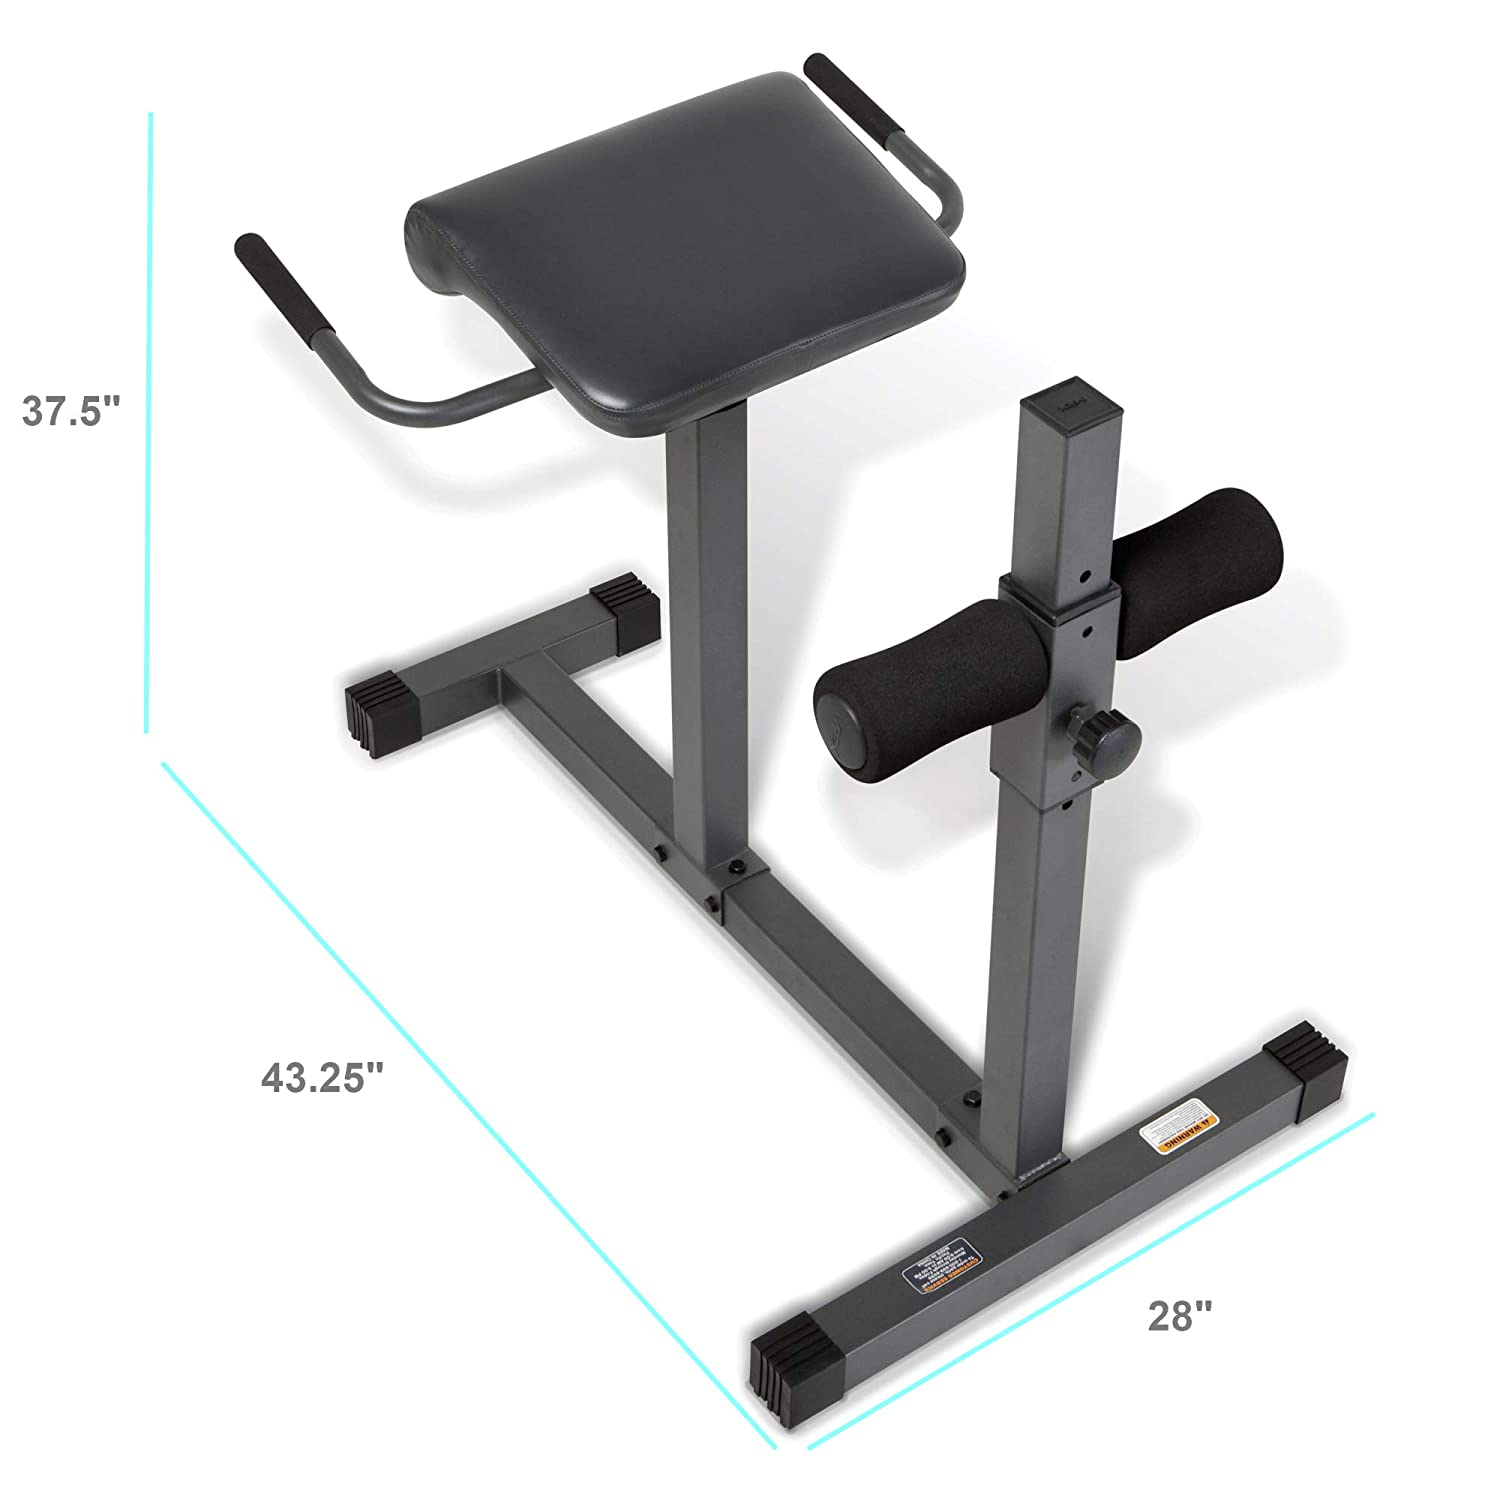 Amazon.com : Marcy Adjustable Hyperextension Roman Chair / Exercise Hyper  Bench JD-3.1 : Abdominal Trainers : Sports & Outdoors